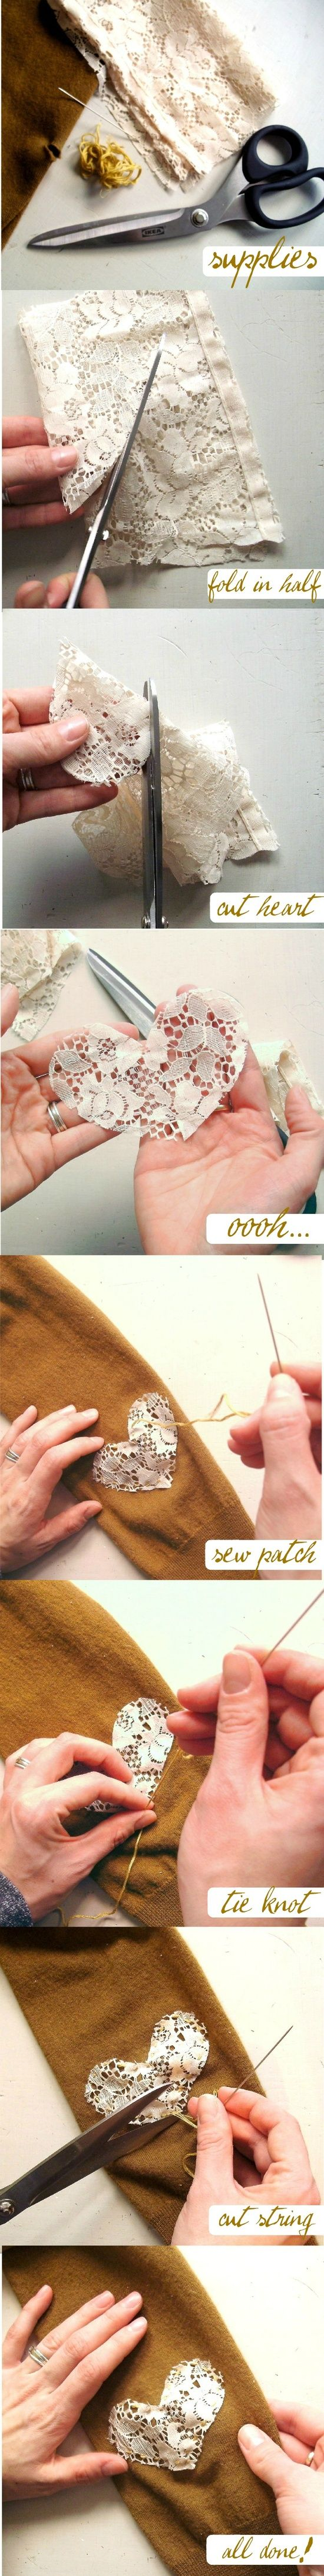 We have lots of great lace for this fun DIY project!